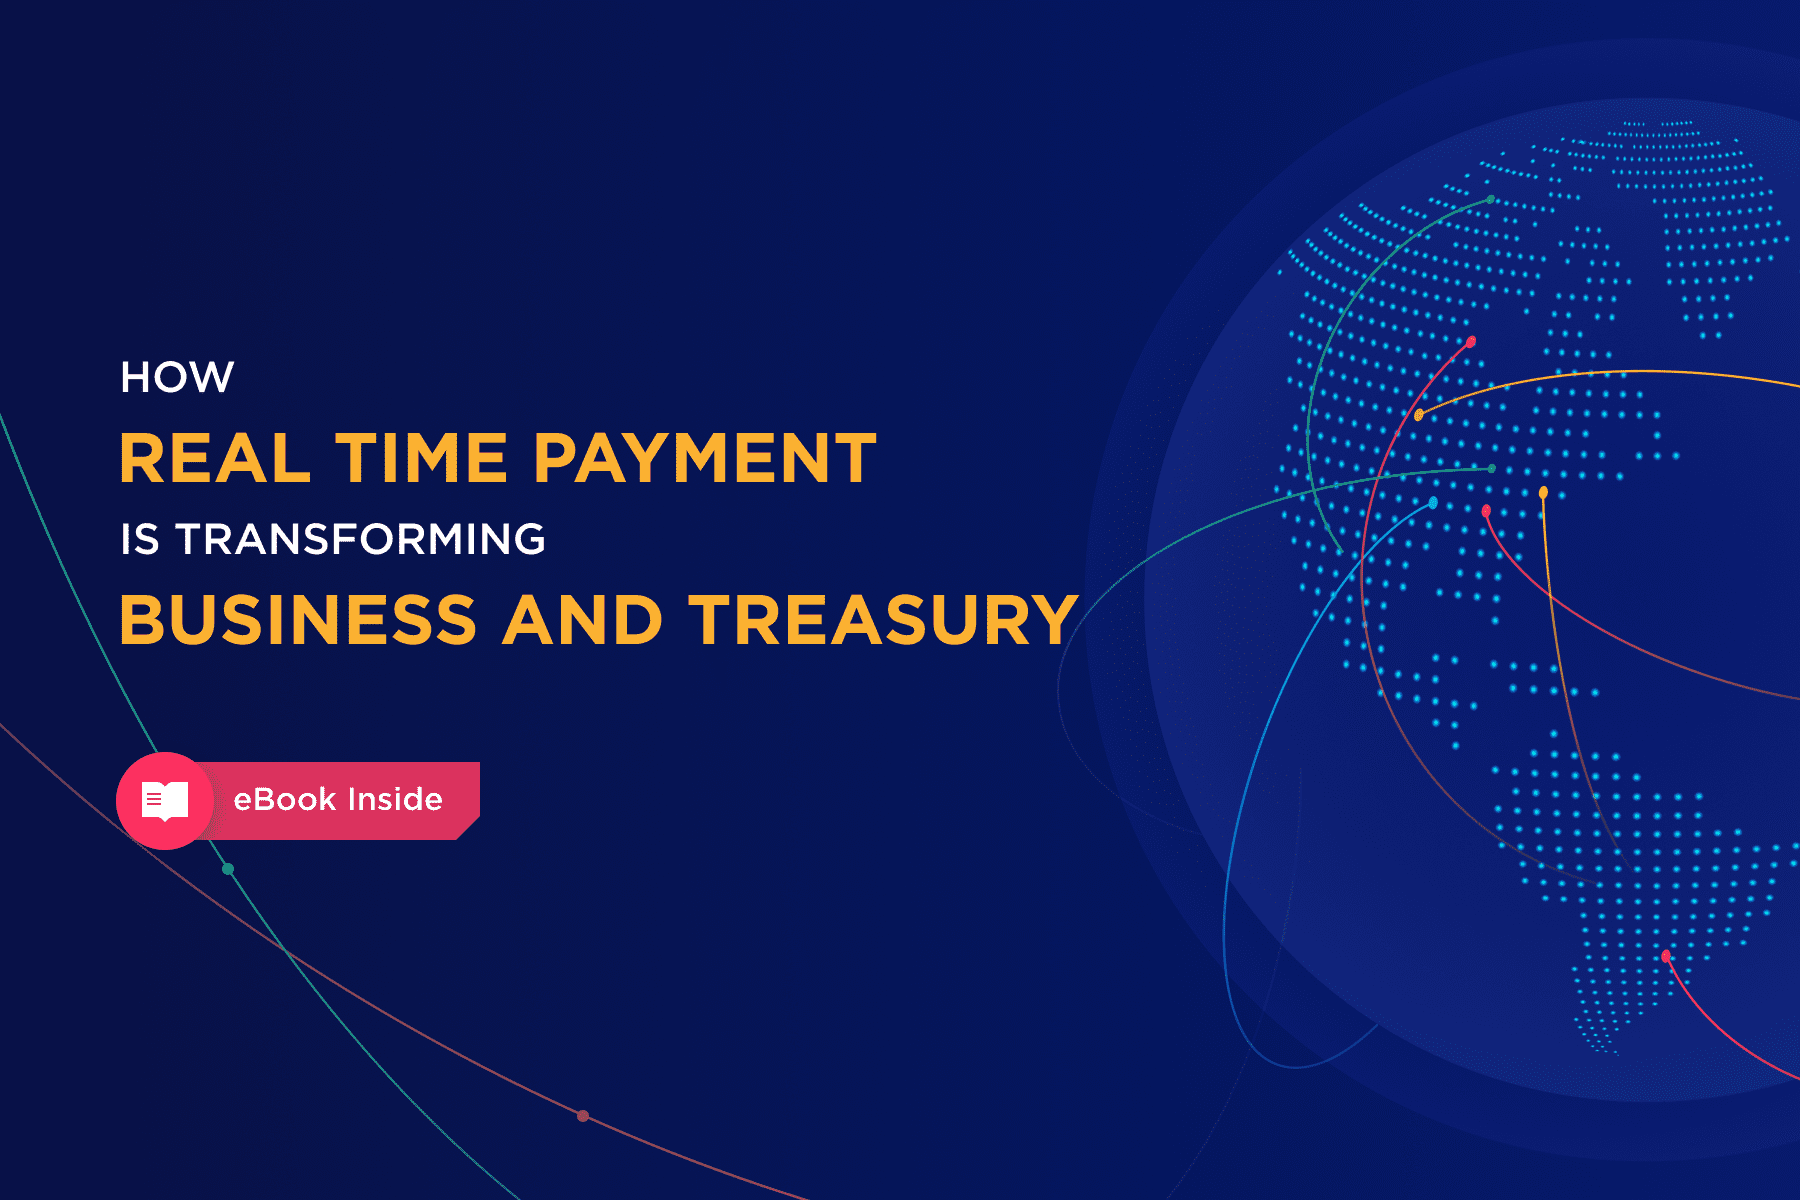 How Real Time Payment is Transforming Business and Treasury